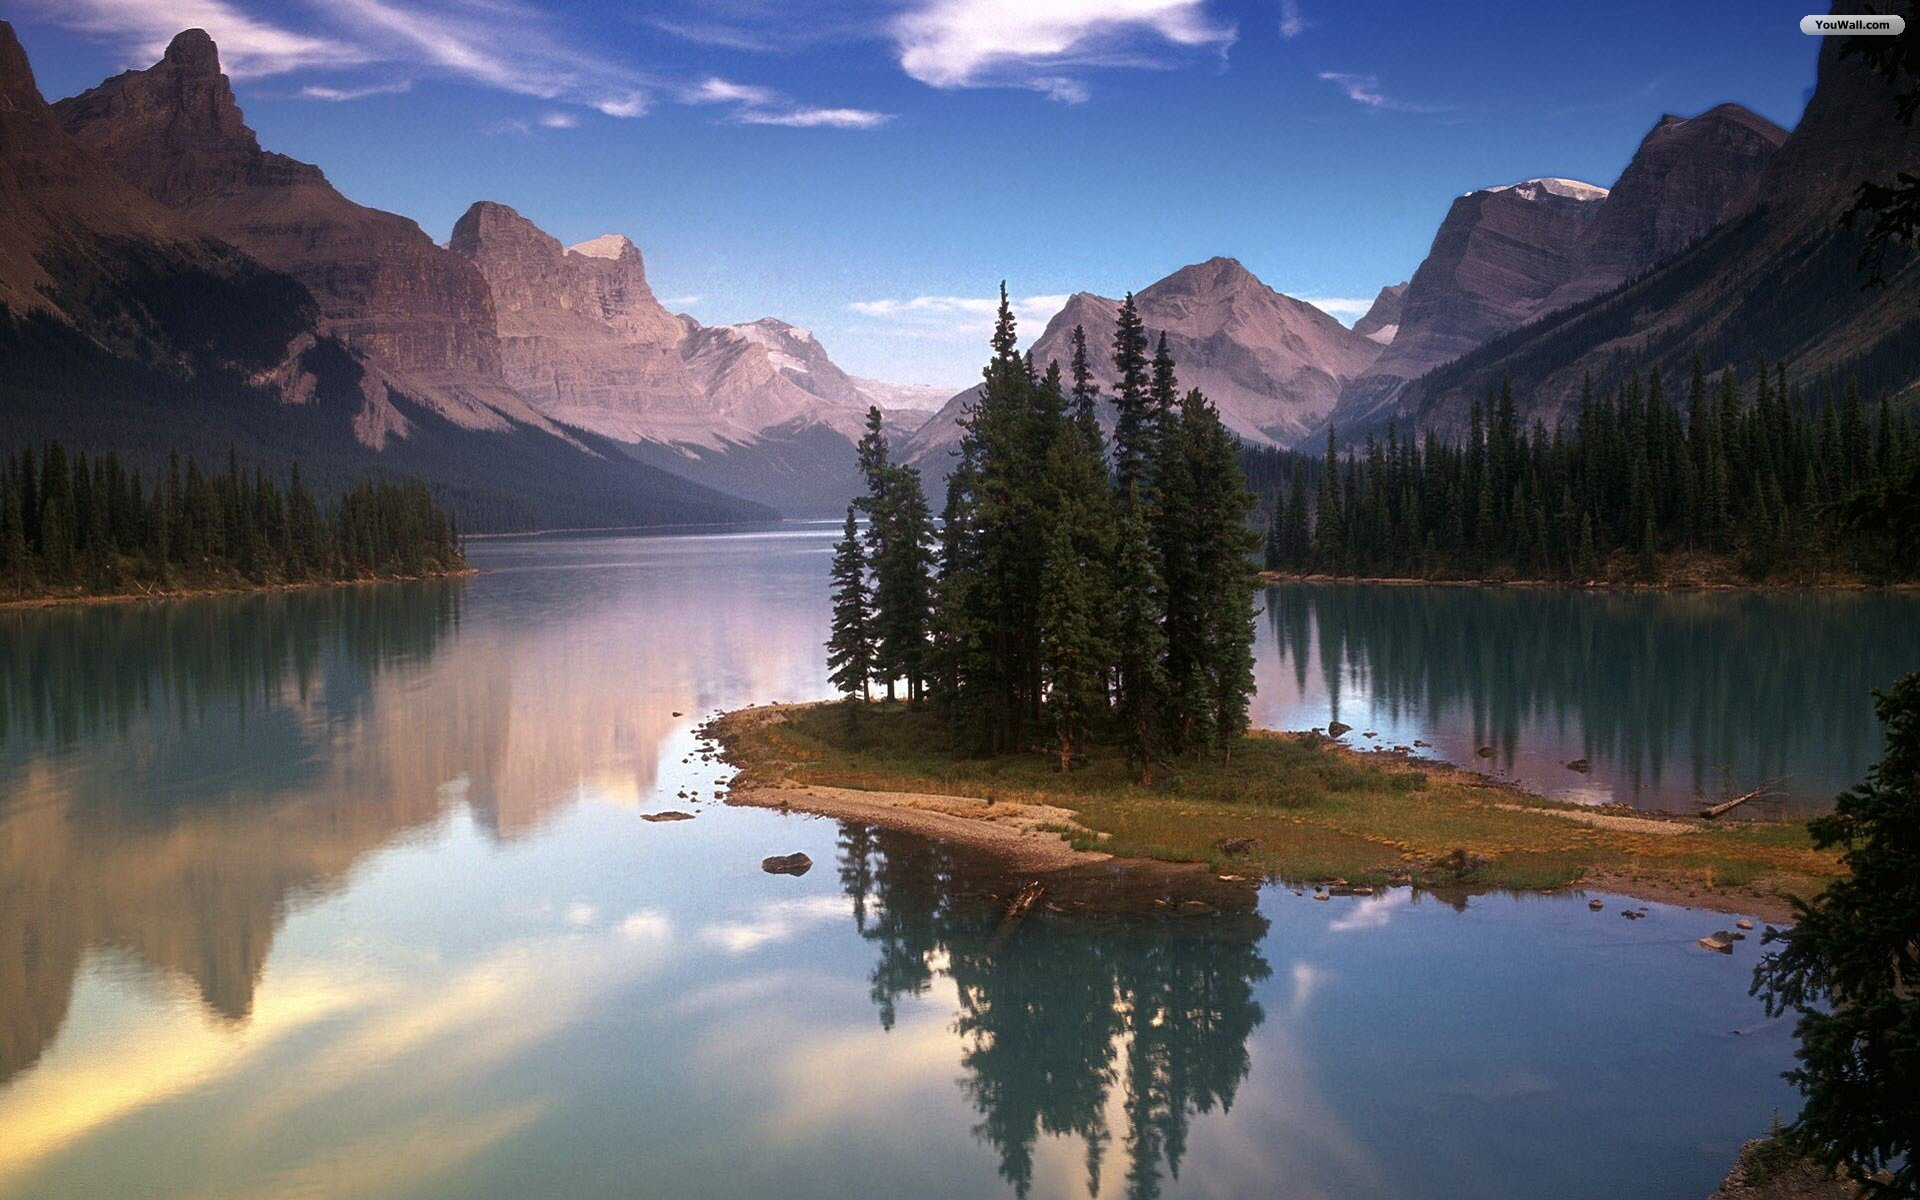 Amazing Lake Wallpaper